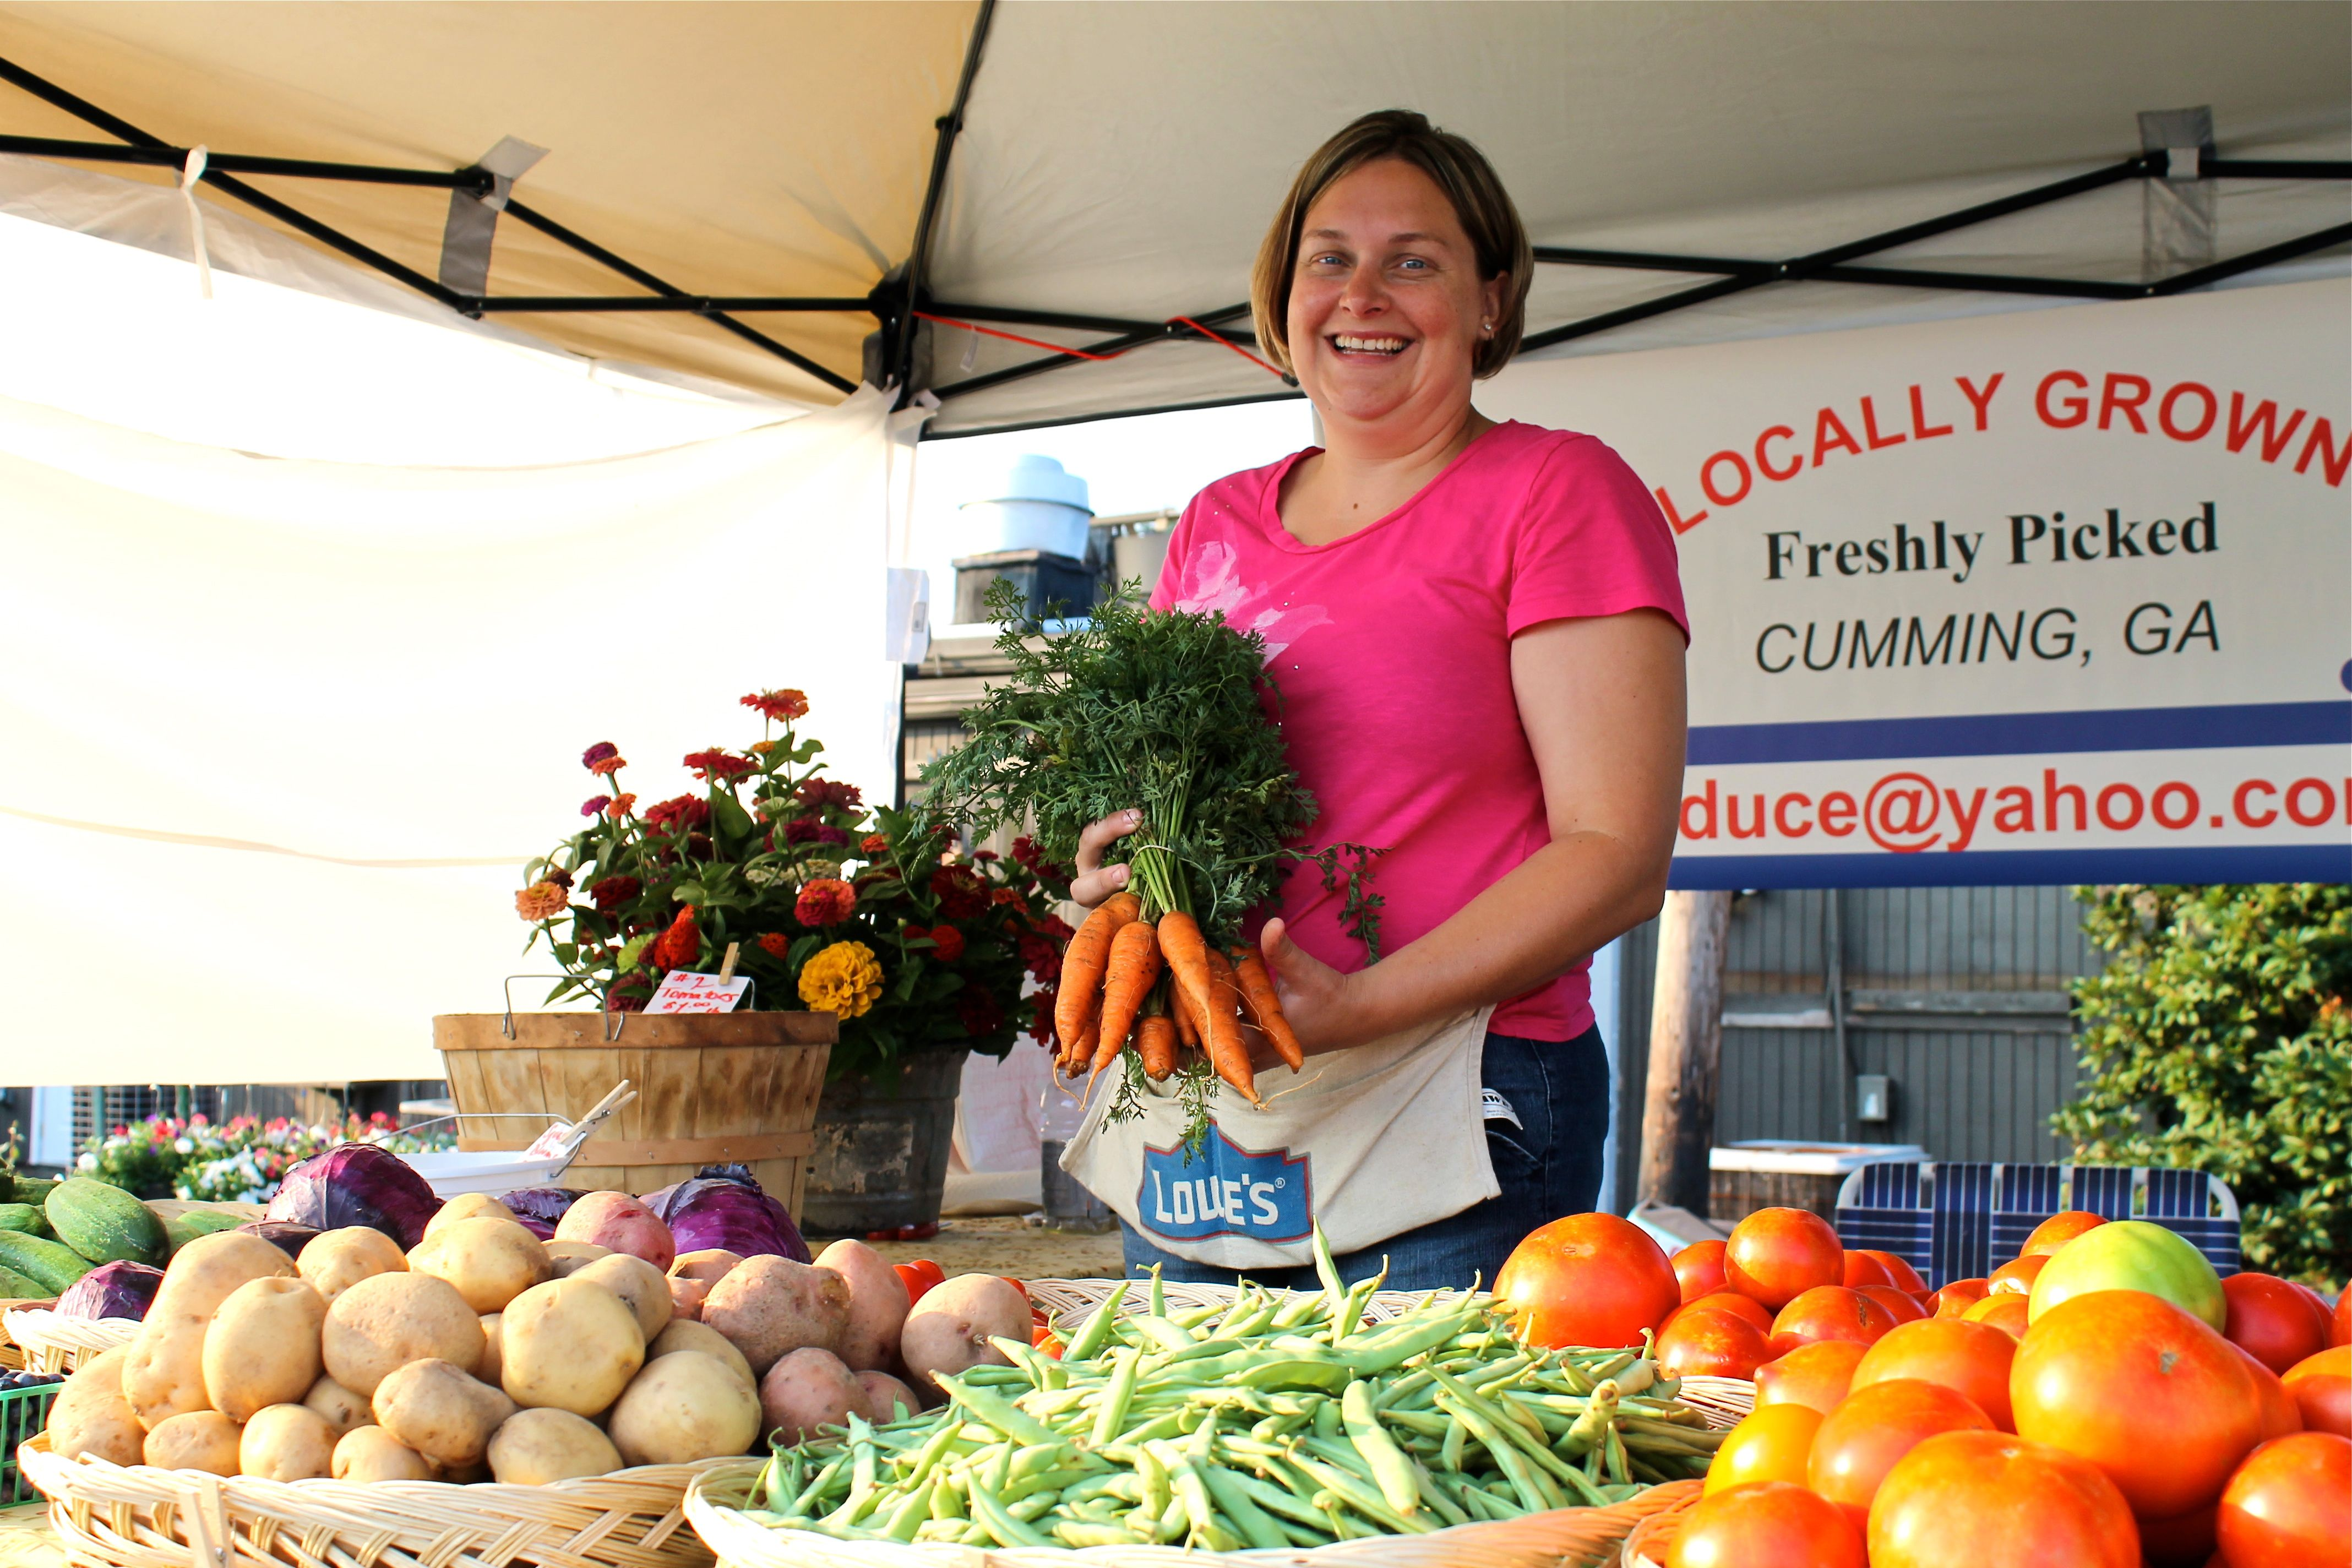 Support local farmers at the Alpharetta Farmers Market